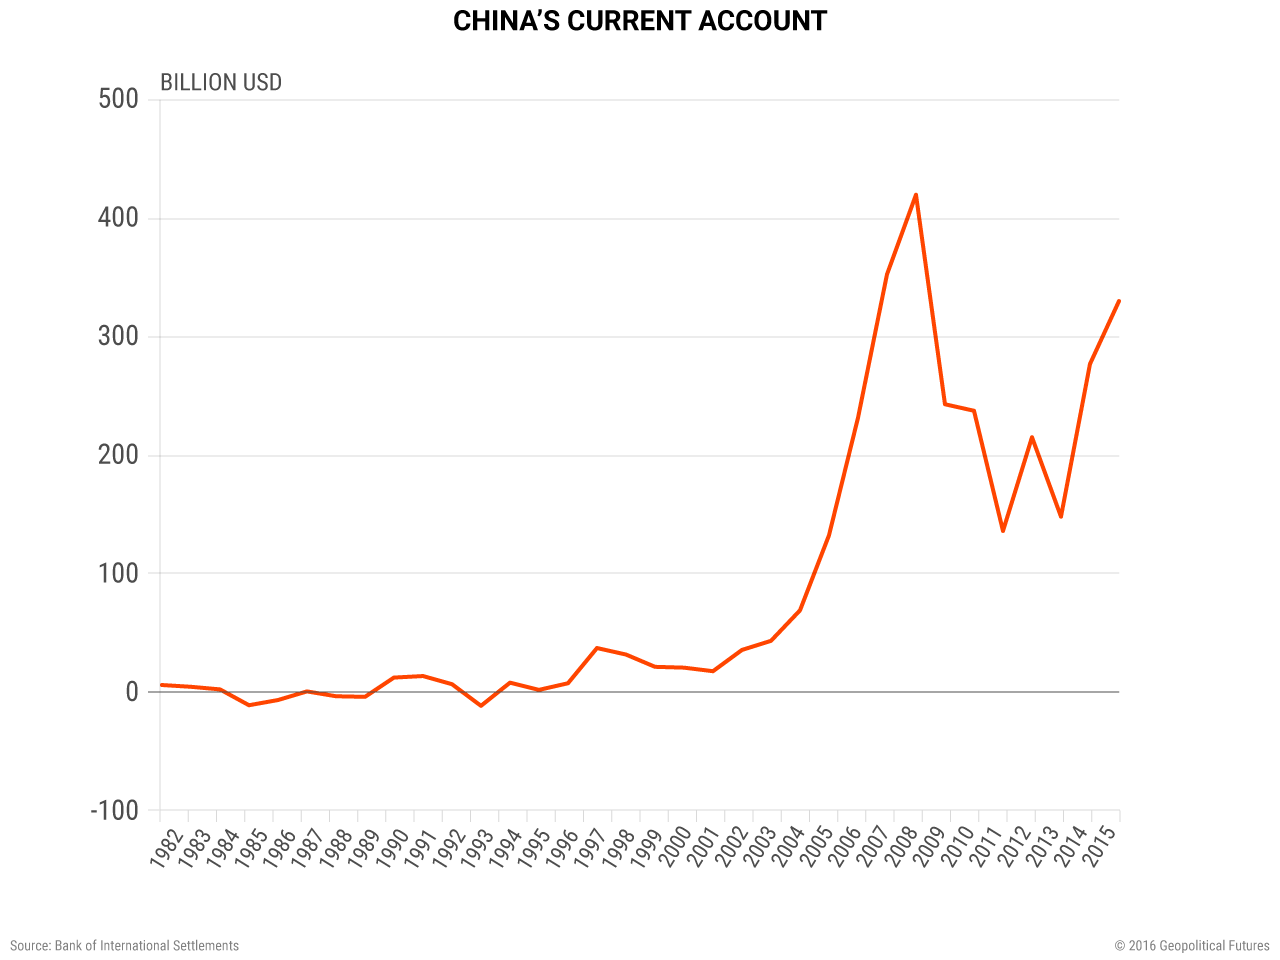 China's Current Account